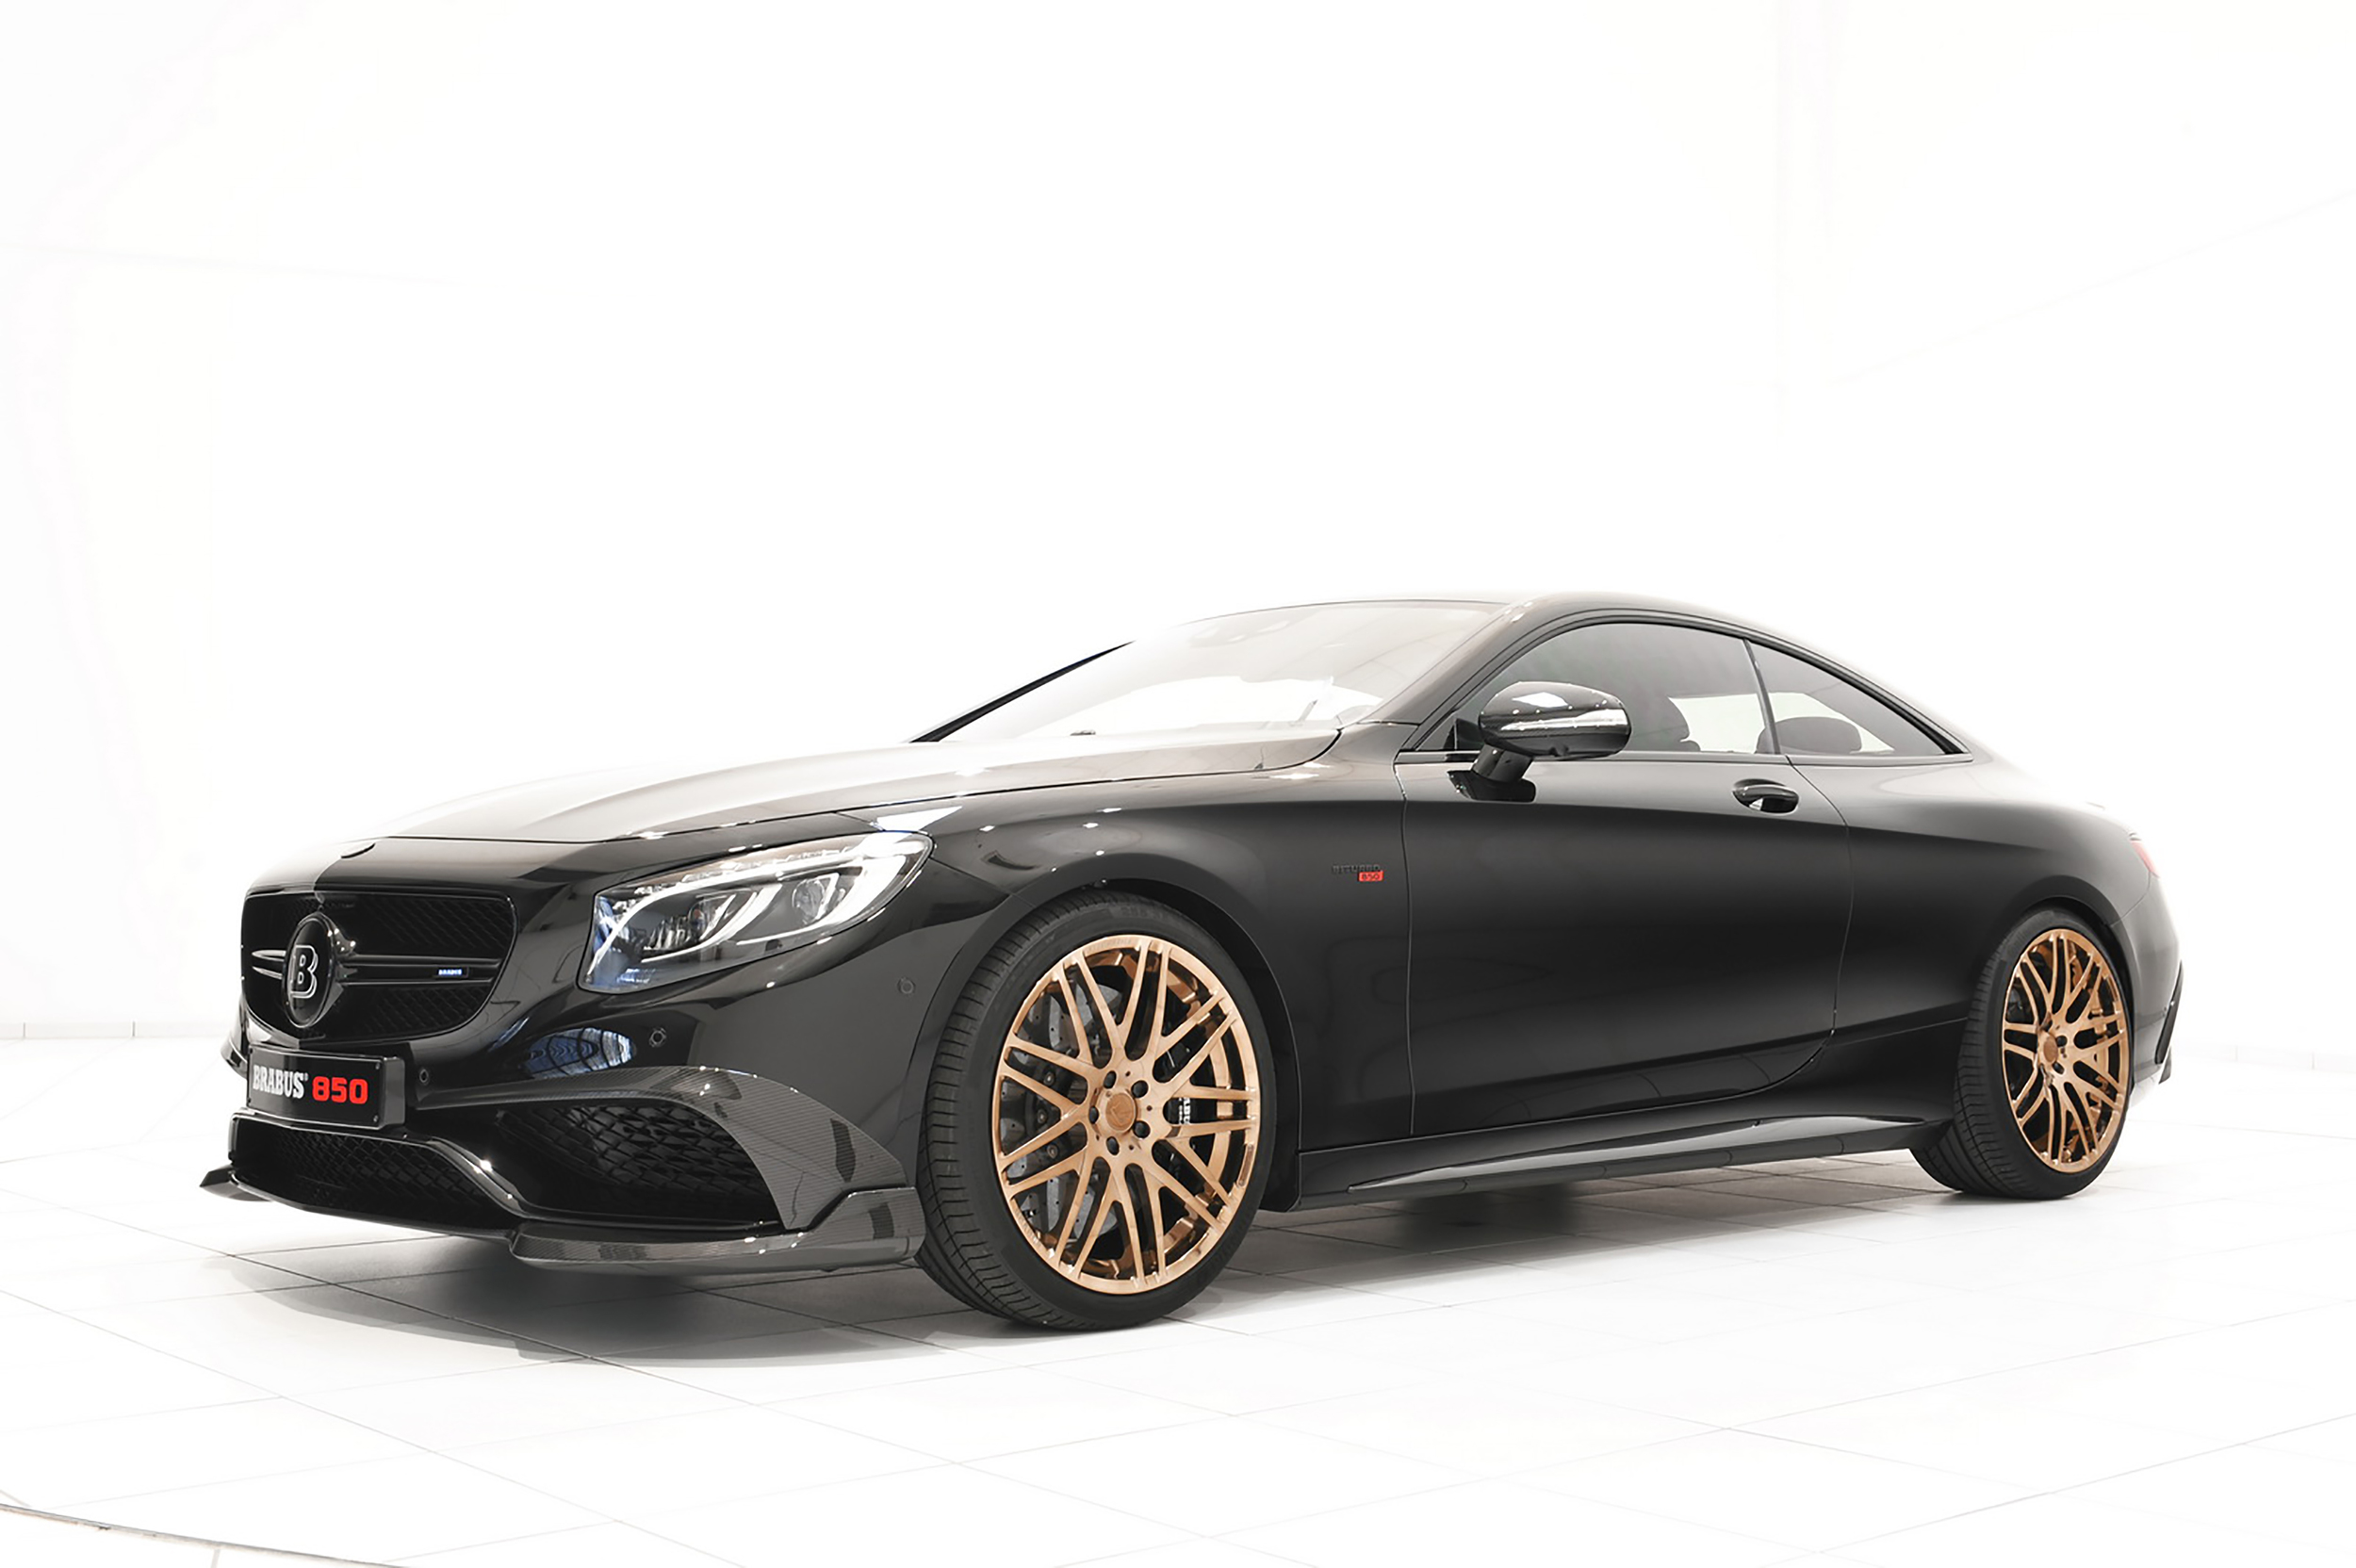 ' ' from the web at 'http://www.blogcdn.com/slideshows/images/slides/335/948/1/S3359481/slug/l/brabus-s-class-coupe-12-1.jpg'